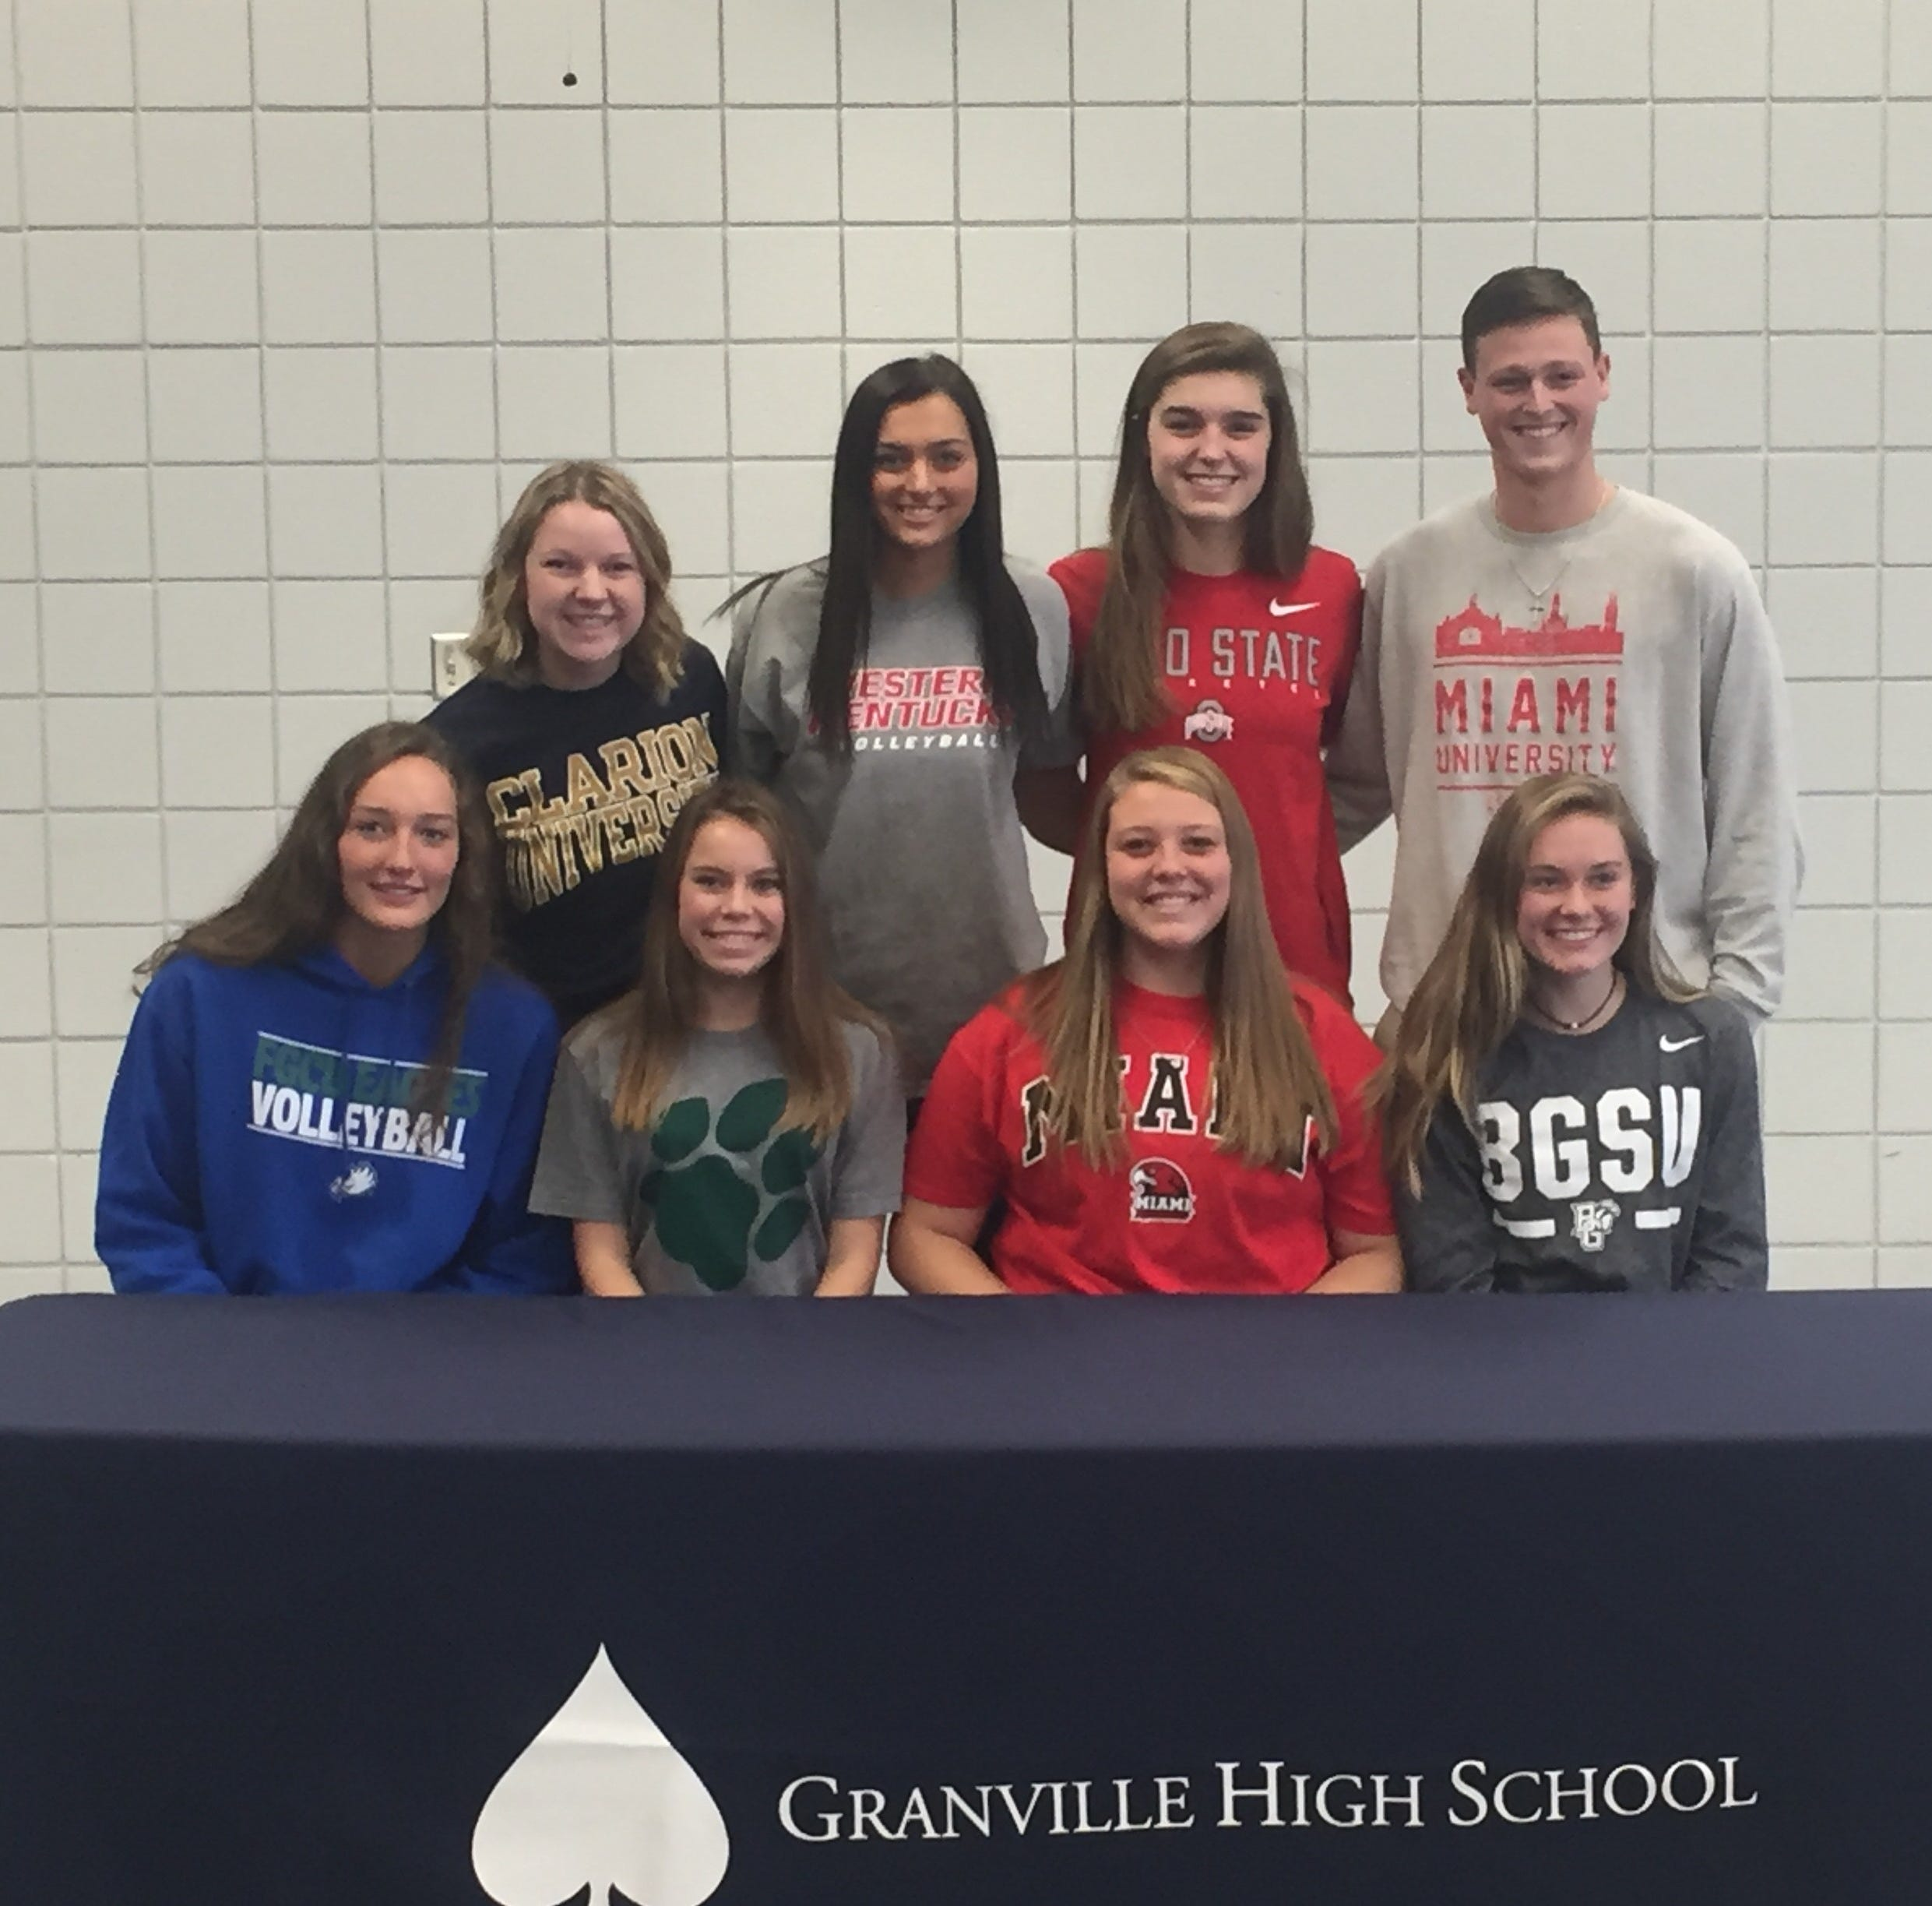 Front: Erin Shomaker, Alyssa Christian, Addison Hoover and Katie Cox. Back: Ally Gilliam, Jenn Rush, Chloe Mulford and Nate Stone.